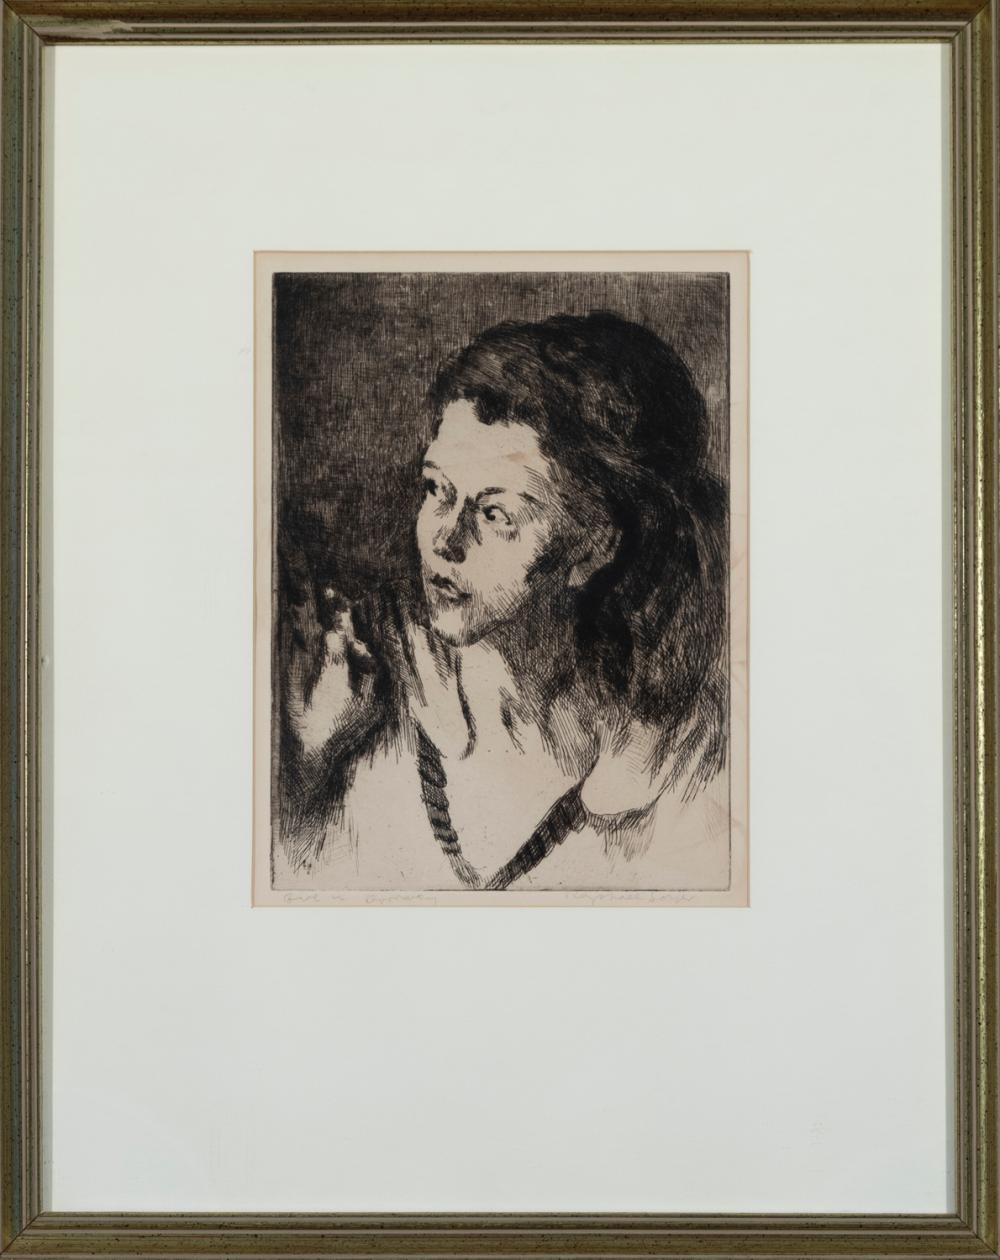 Raphael Soyer, American ( 1899-1987), Girl in Doorway, 1941, etching, 9 3/8 x 6 7/8 inches